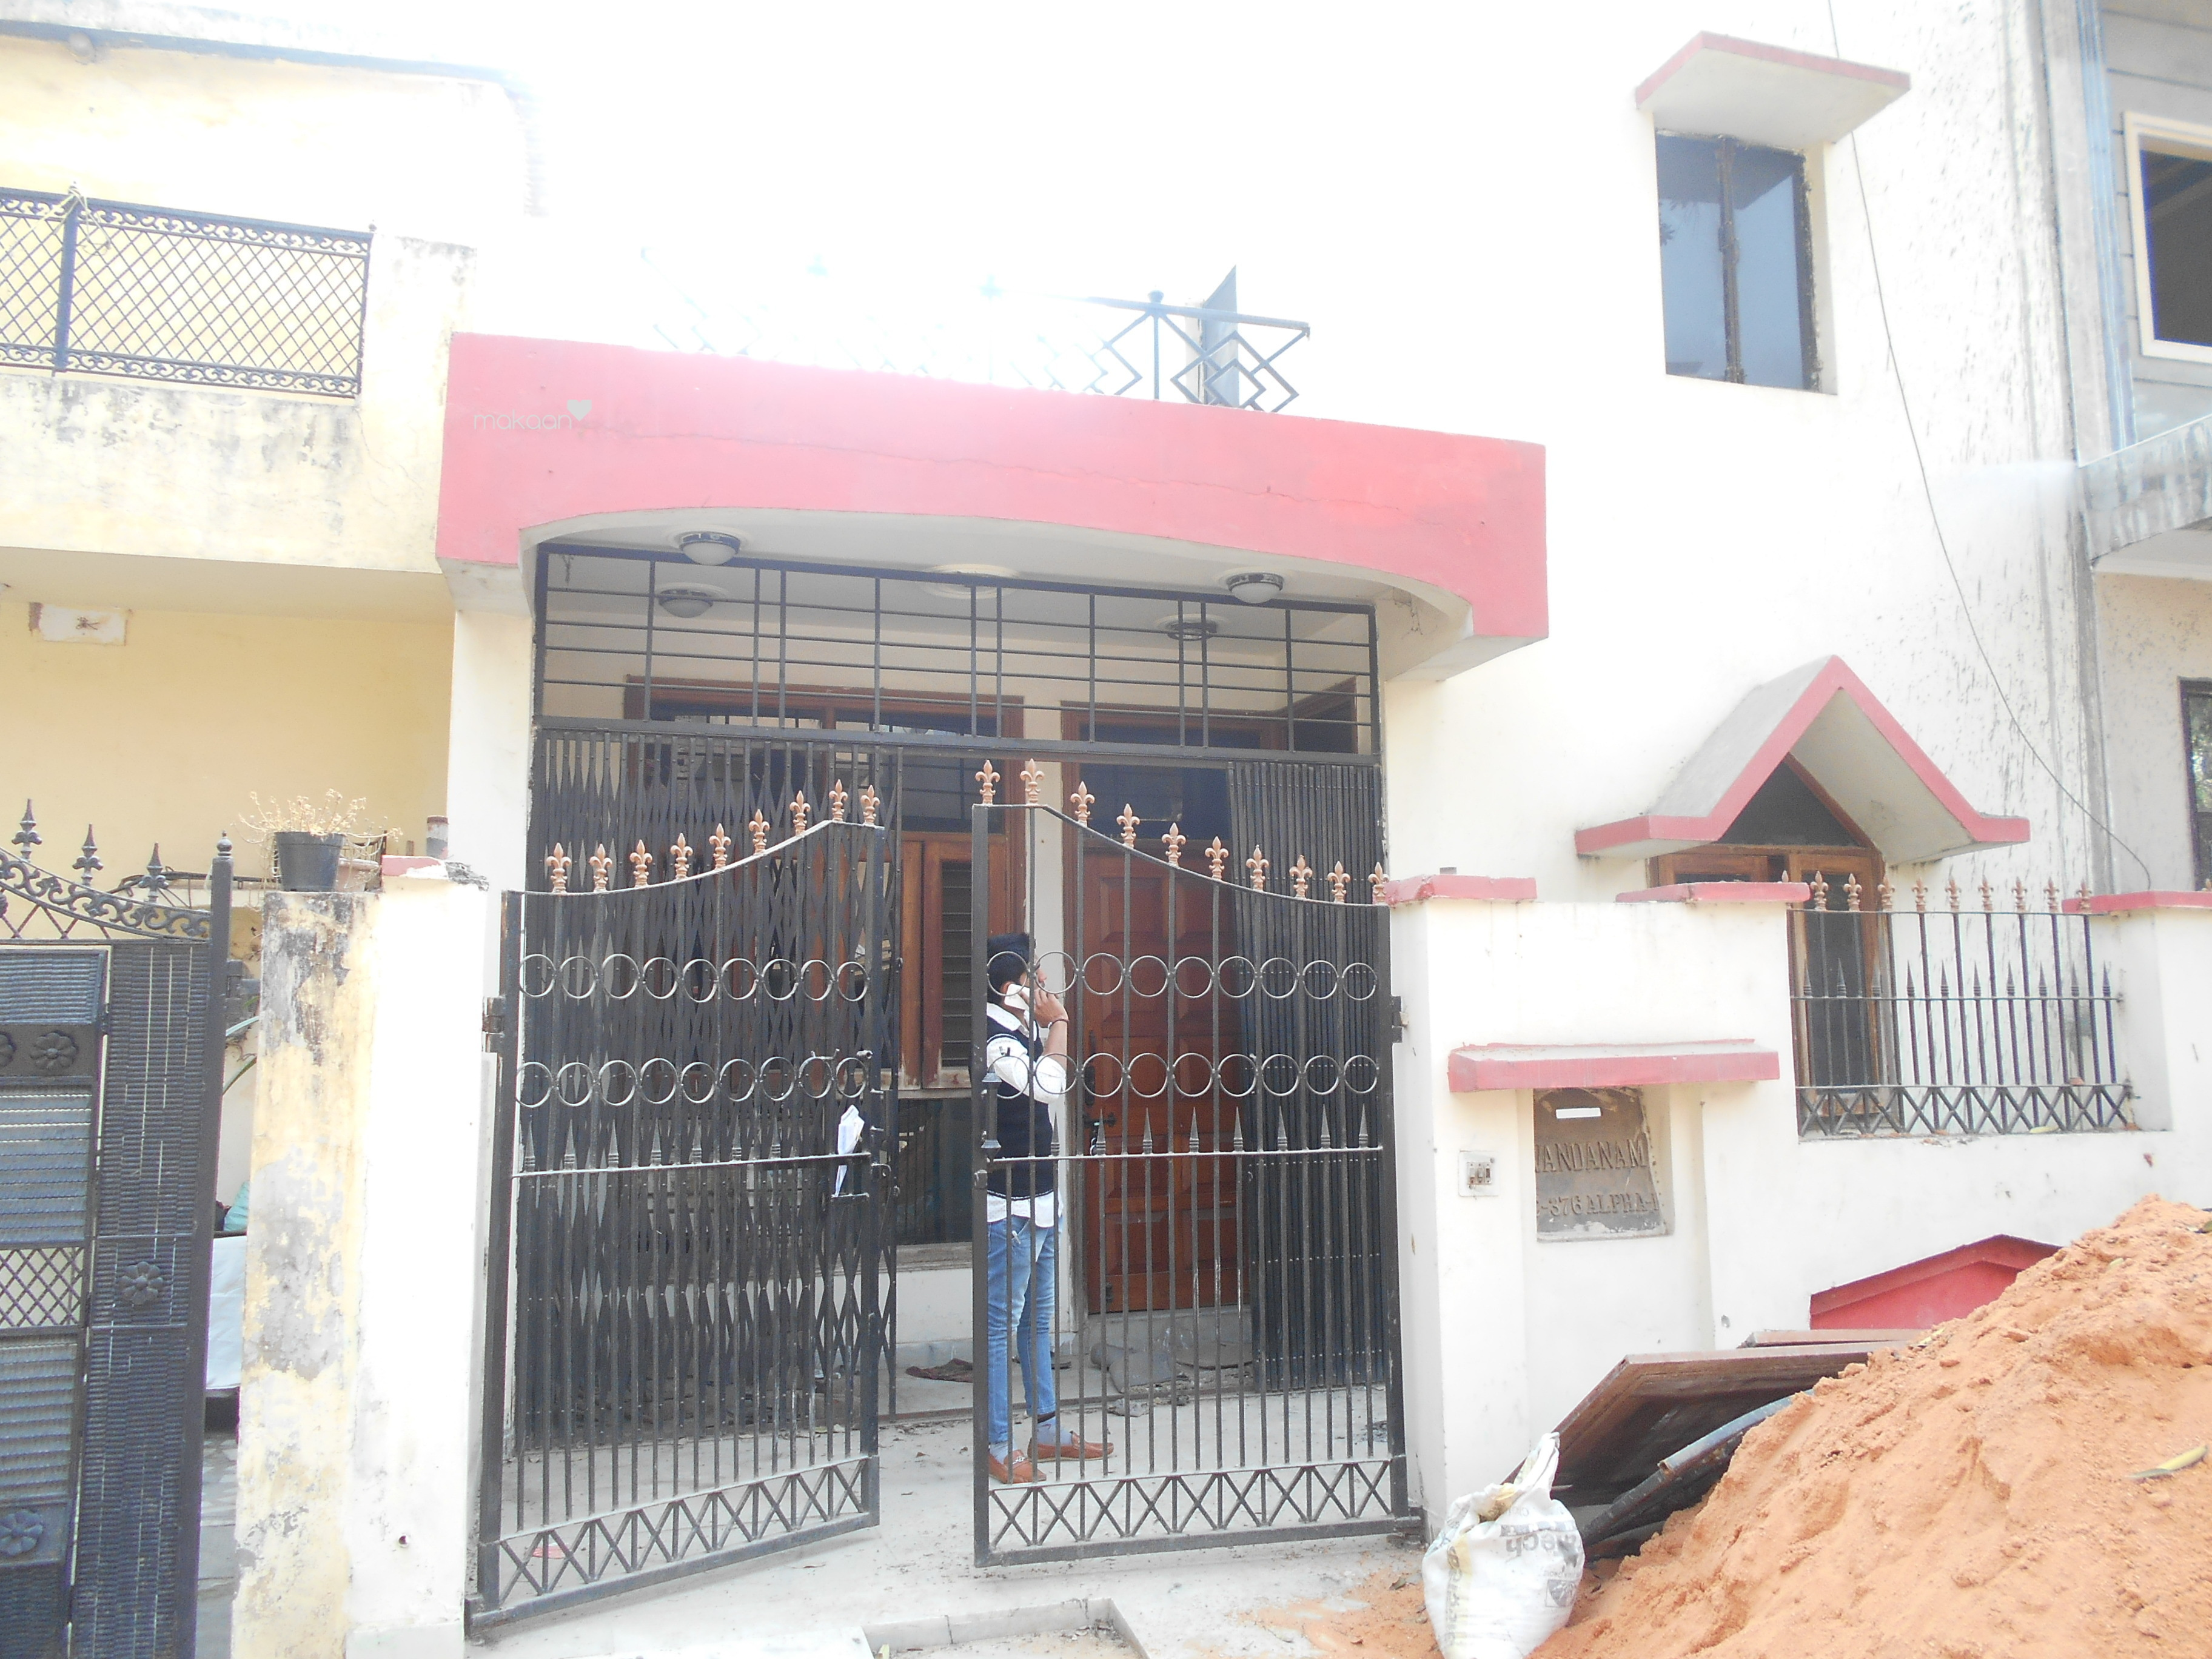 1614 sq ft 2BHK 2BHK+2T (1,614 sq ft) Property By ALFATECH REALTORS In Project, Alpha 2